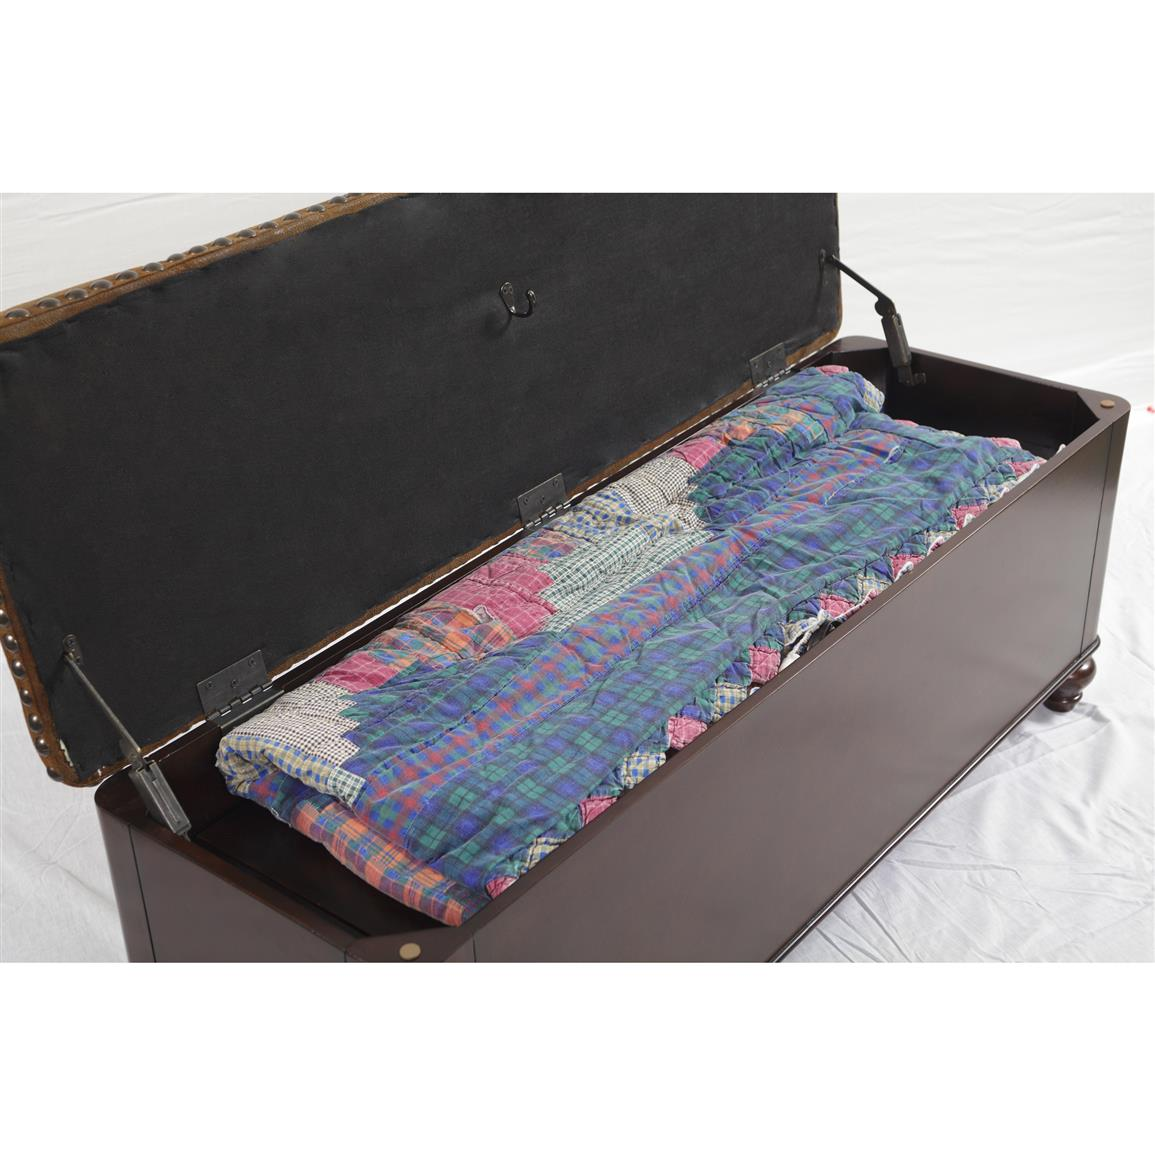 Ample storage in upper compartment for blankets or sportsmen accessories